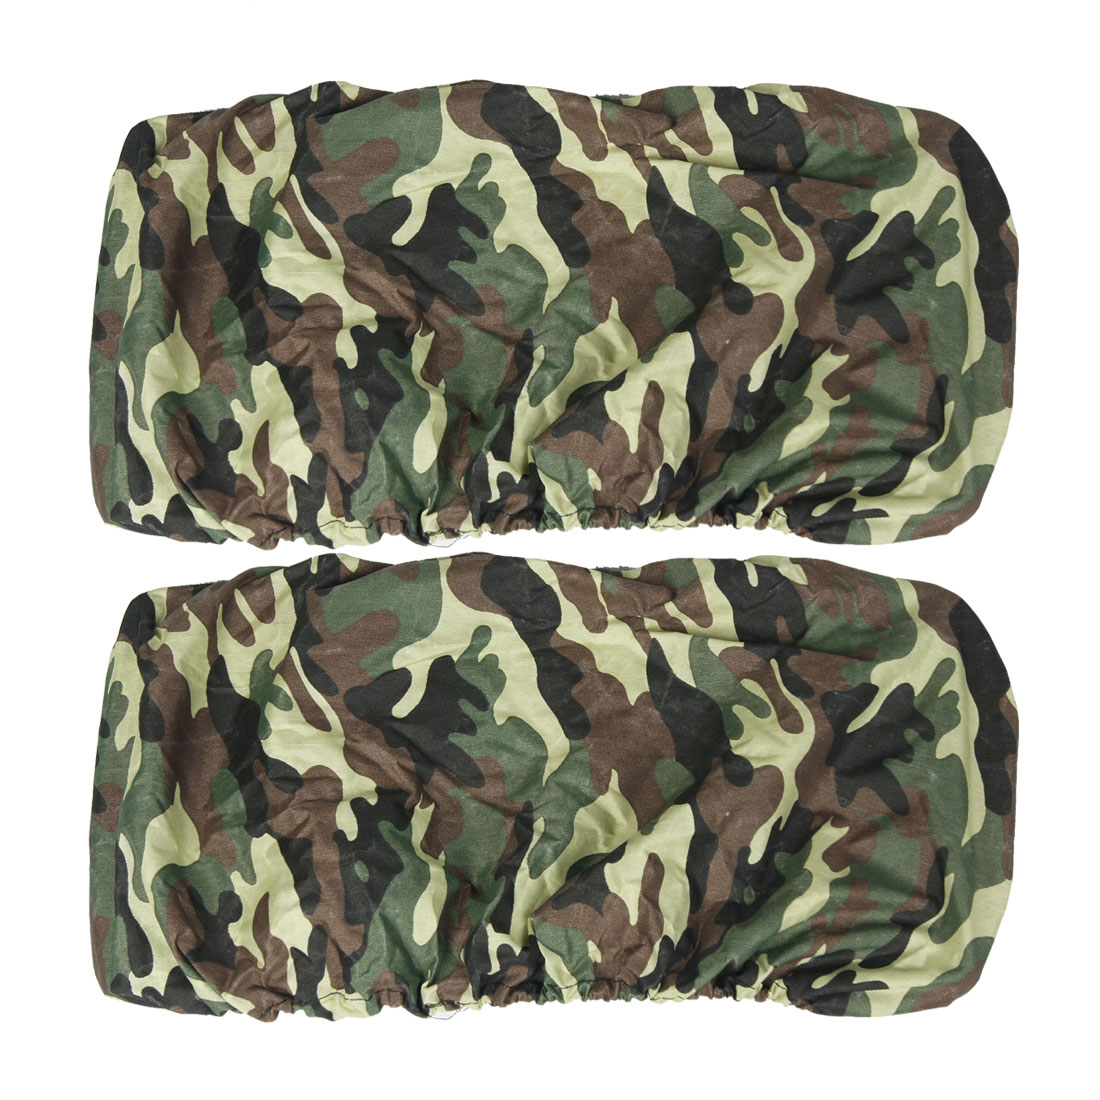 2 x Camouflage Pattern Elastic Trim Auto Car Licence Plate Covers